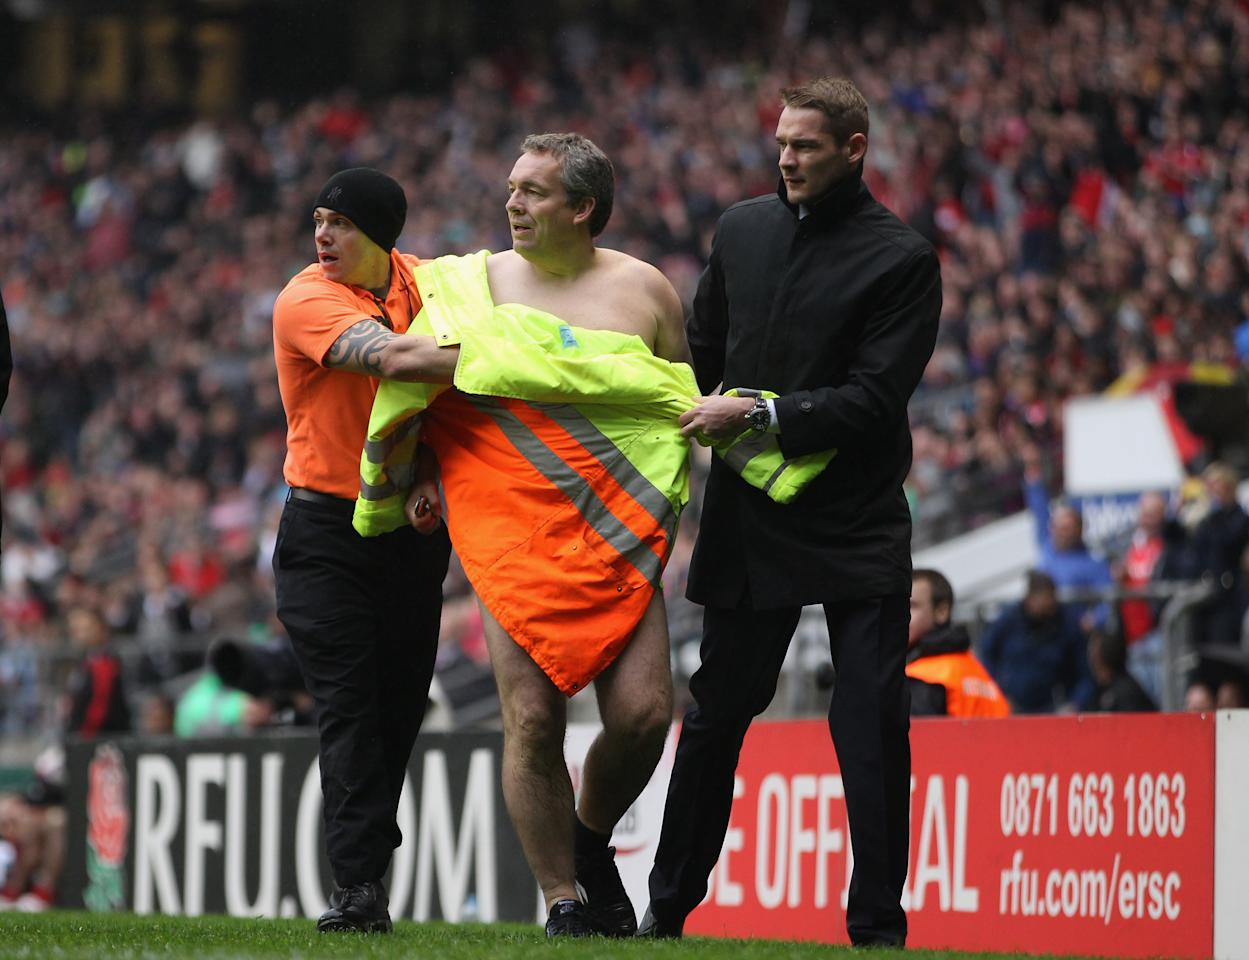 LONDON, ENGLAND - APRIL 28:  A streaker is led away during the Babcock Trophy match between the Army and the Navy at Twickenham Stadium on April 28, 2012 in London, England.  (Photo by Tom Shaw/Getty Images)